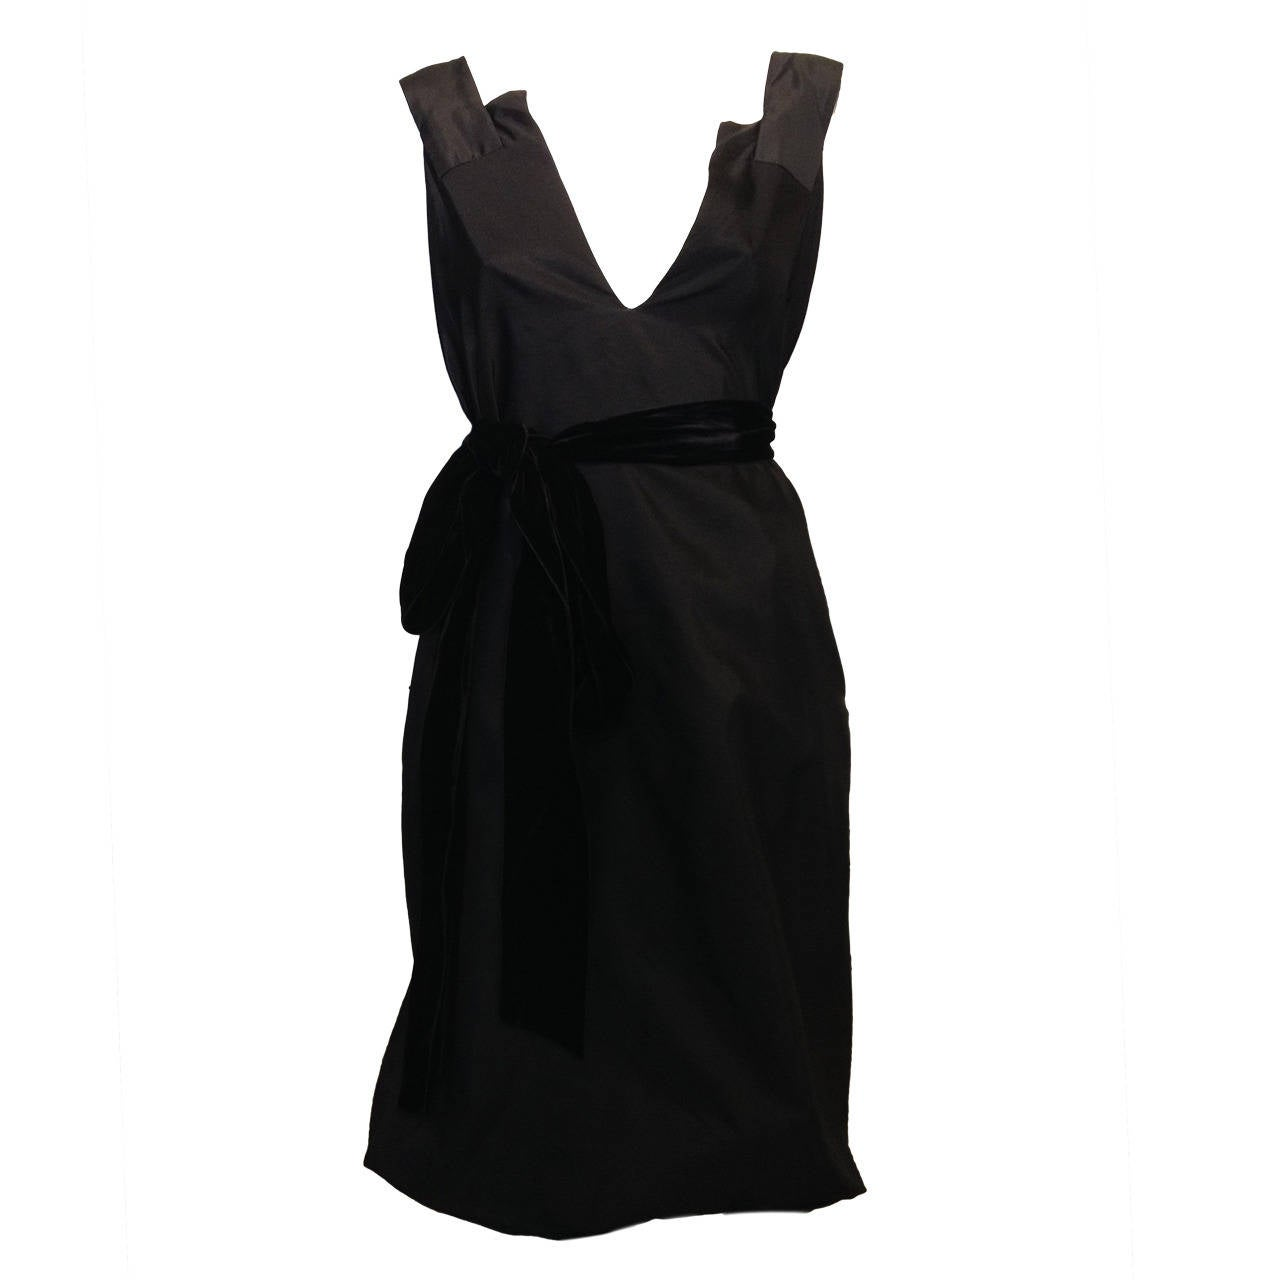 Yves Saint Laurent Black Cocktail Dress 1